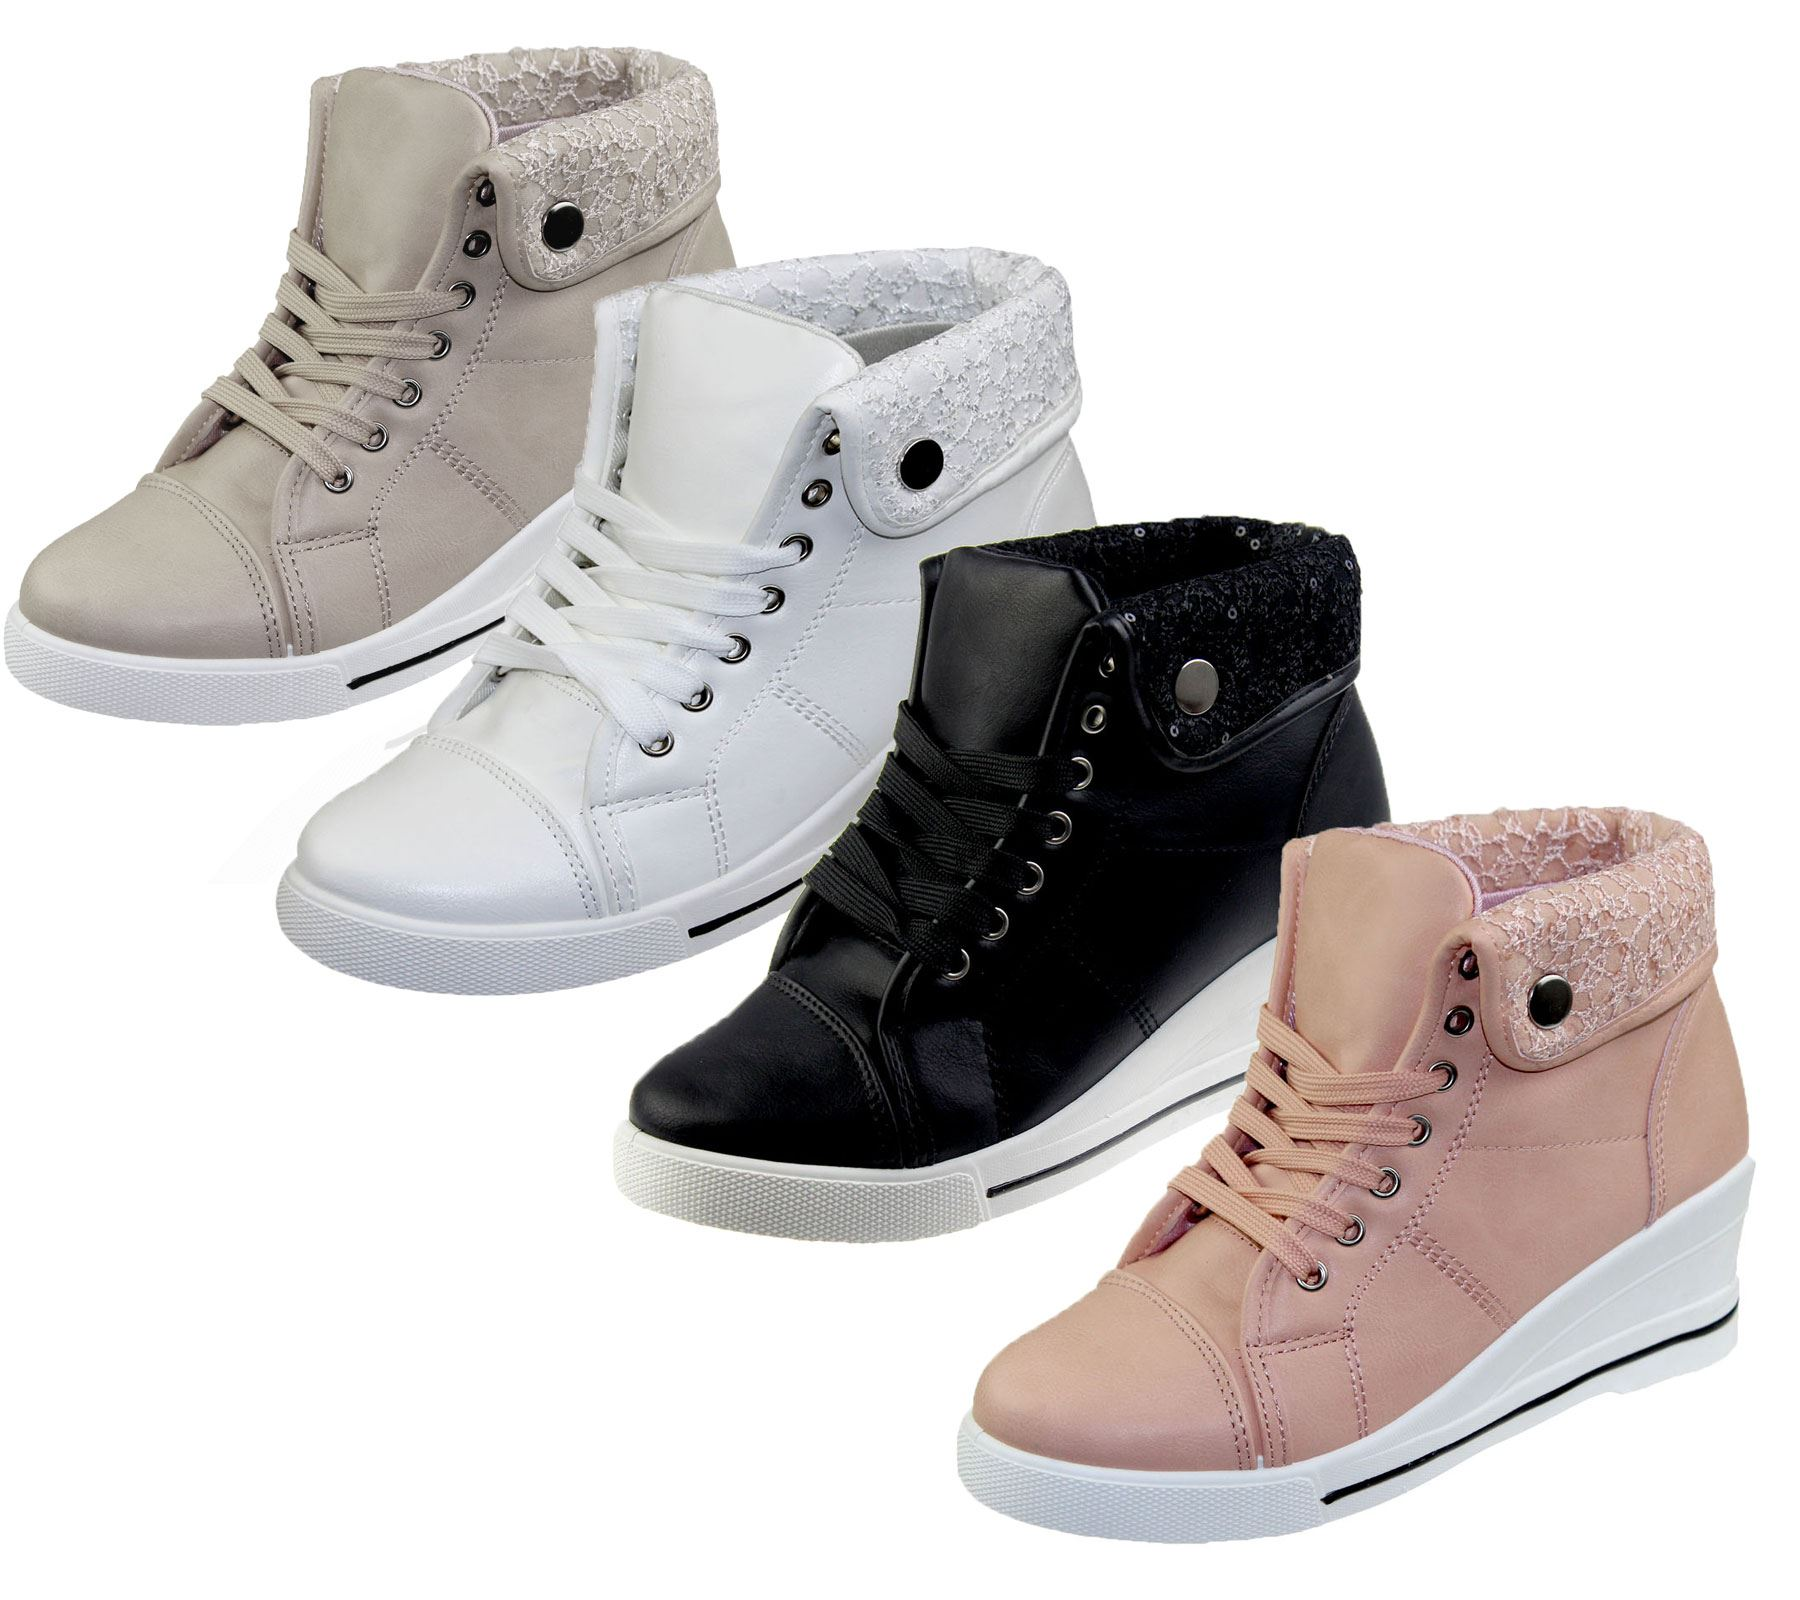 WOMENS WEDGE HEEL FAUX LEATHER HIGH TOP BOOTS LADIES ANKLE SNEAKER GIRL TRAINERS | EBay